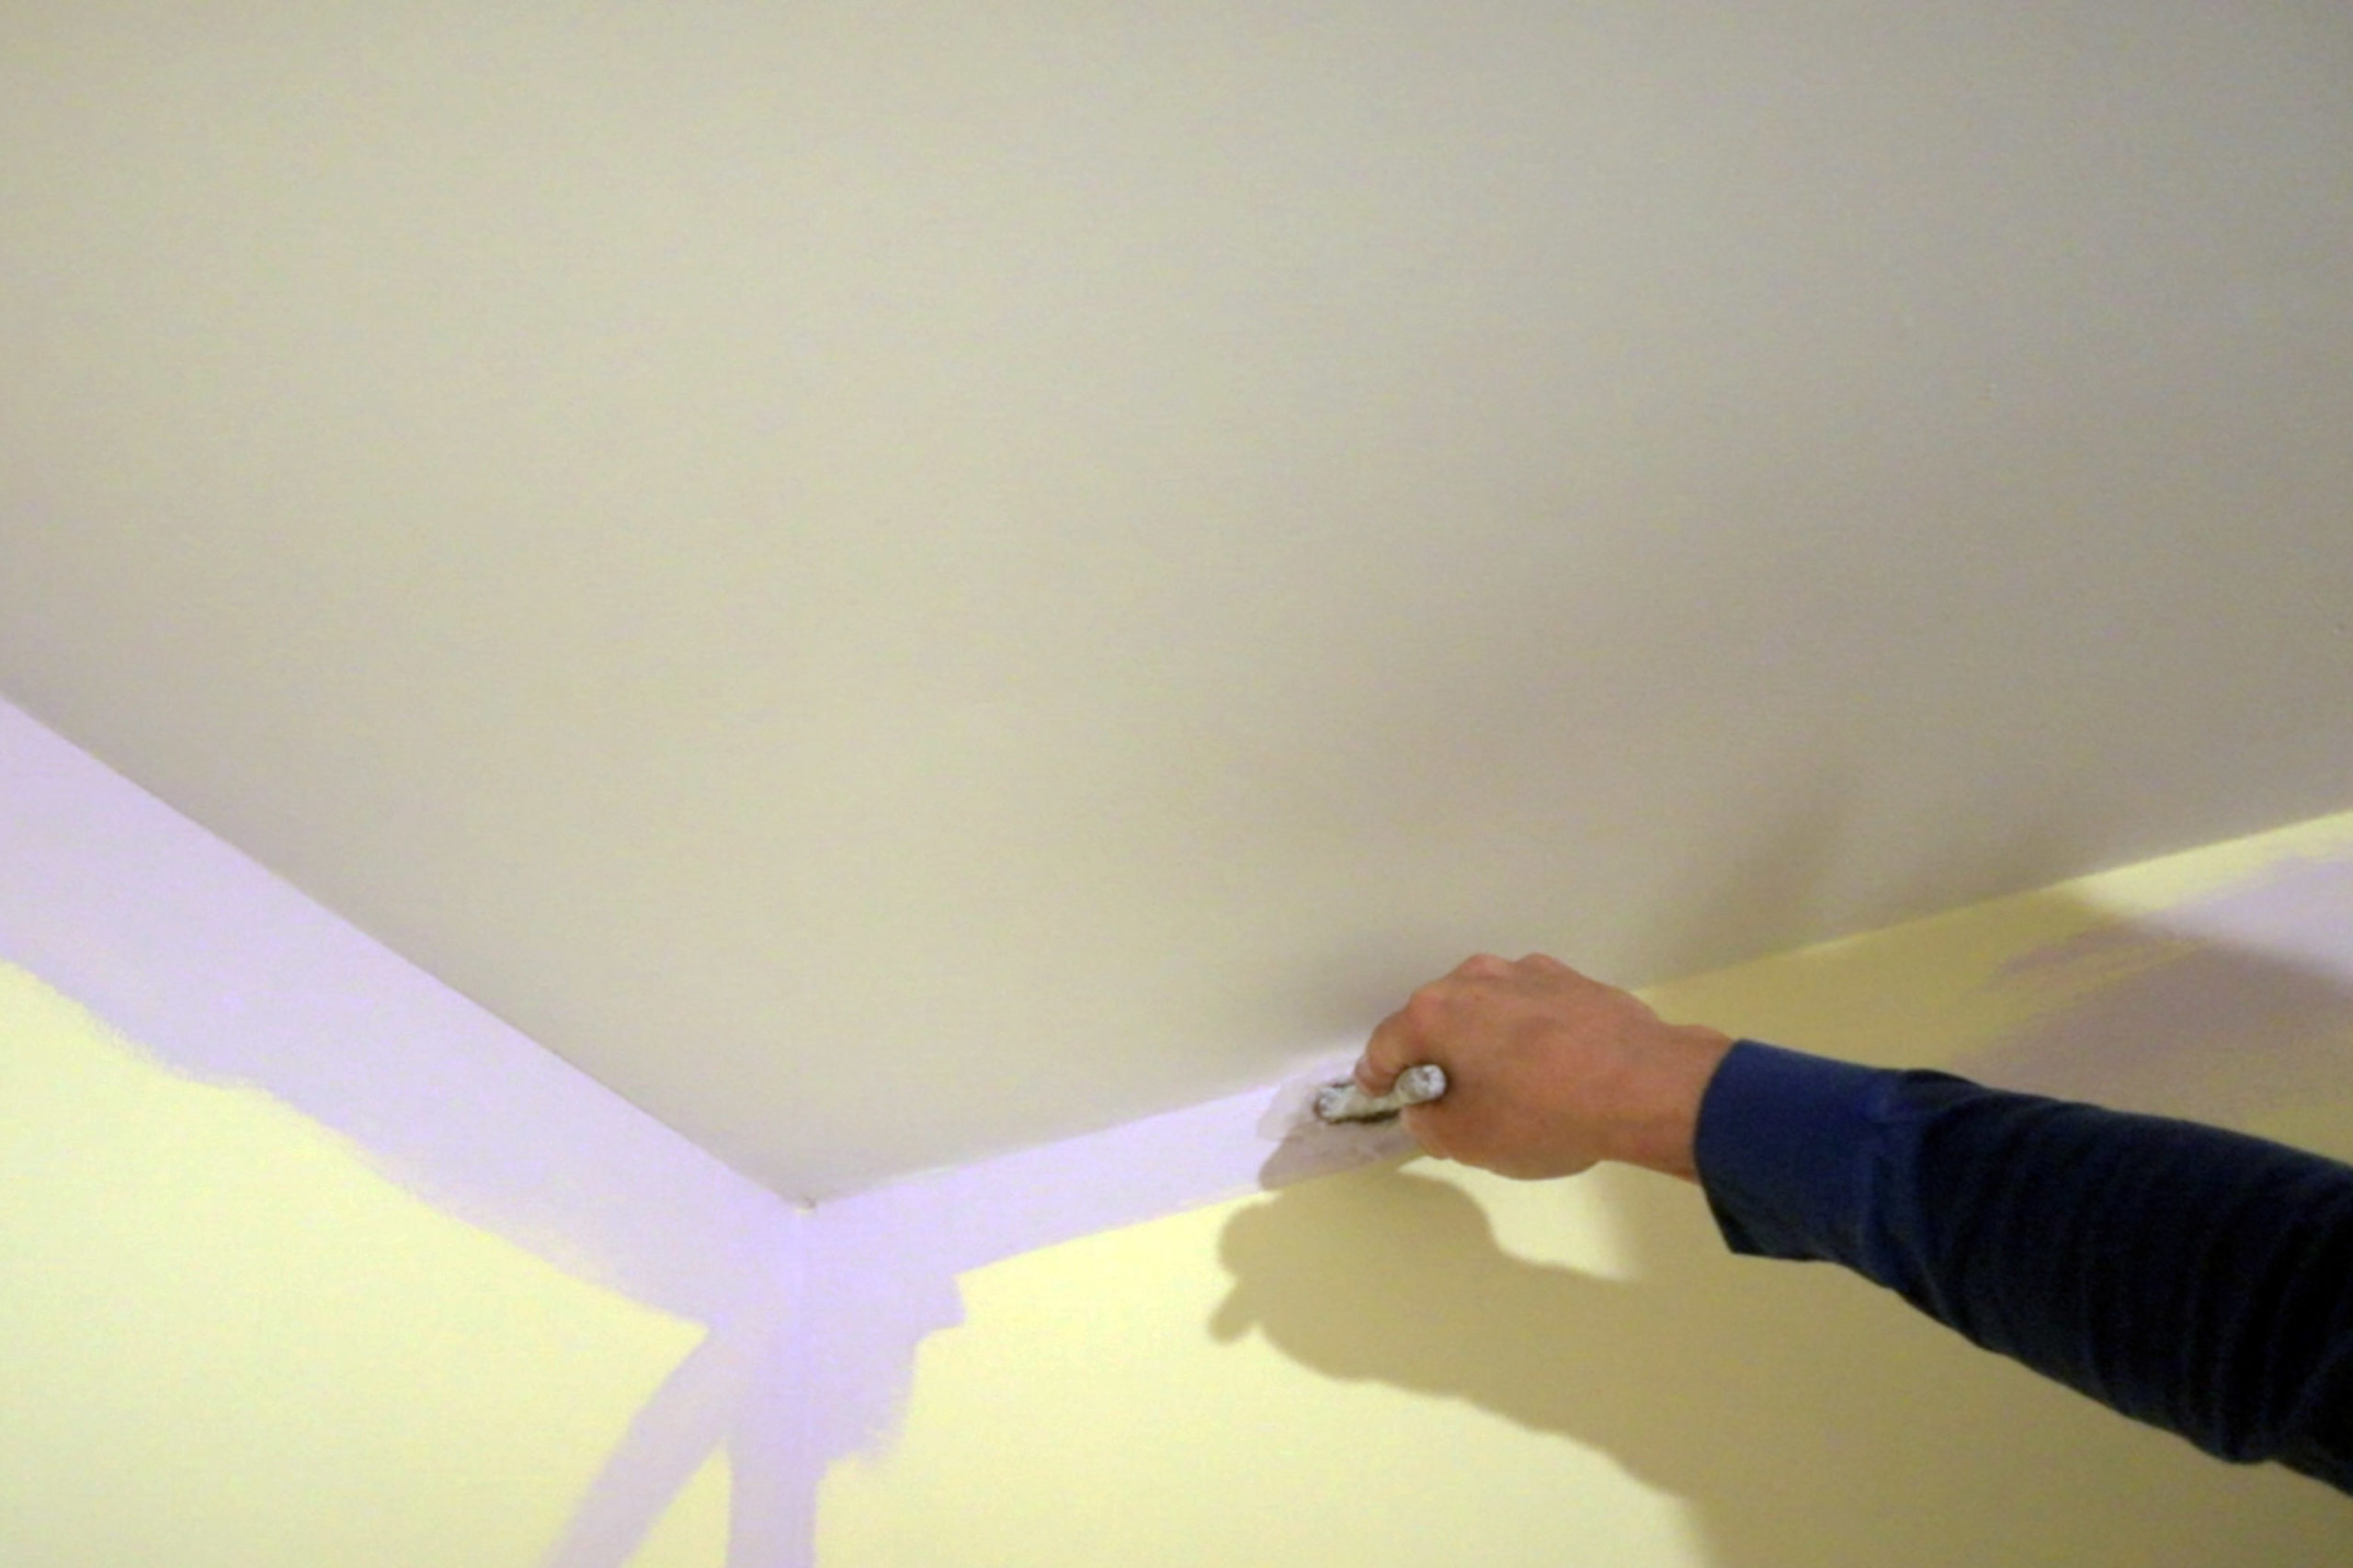 How to cut in when you paint